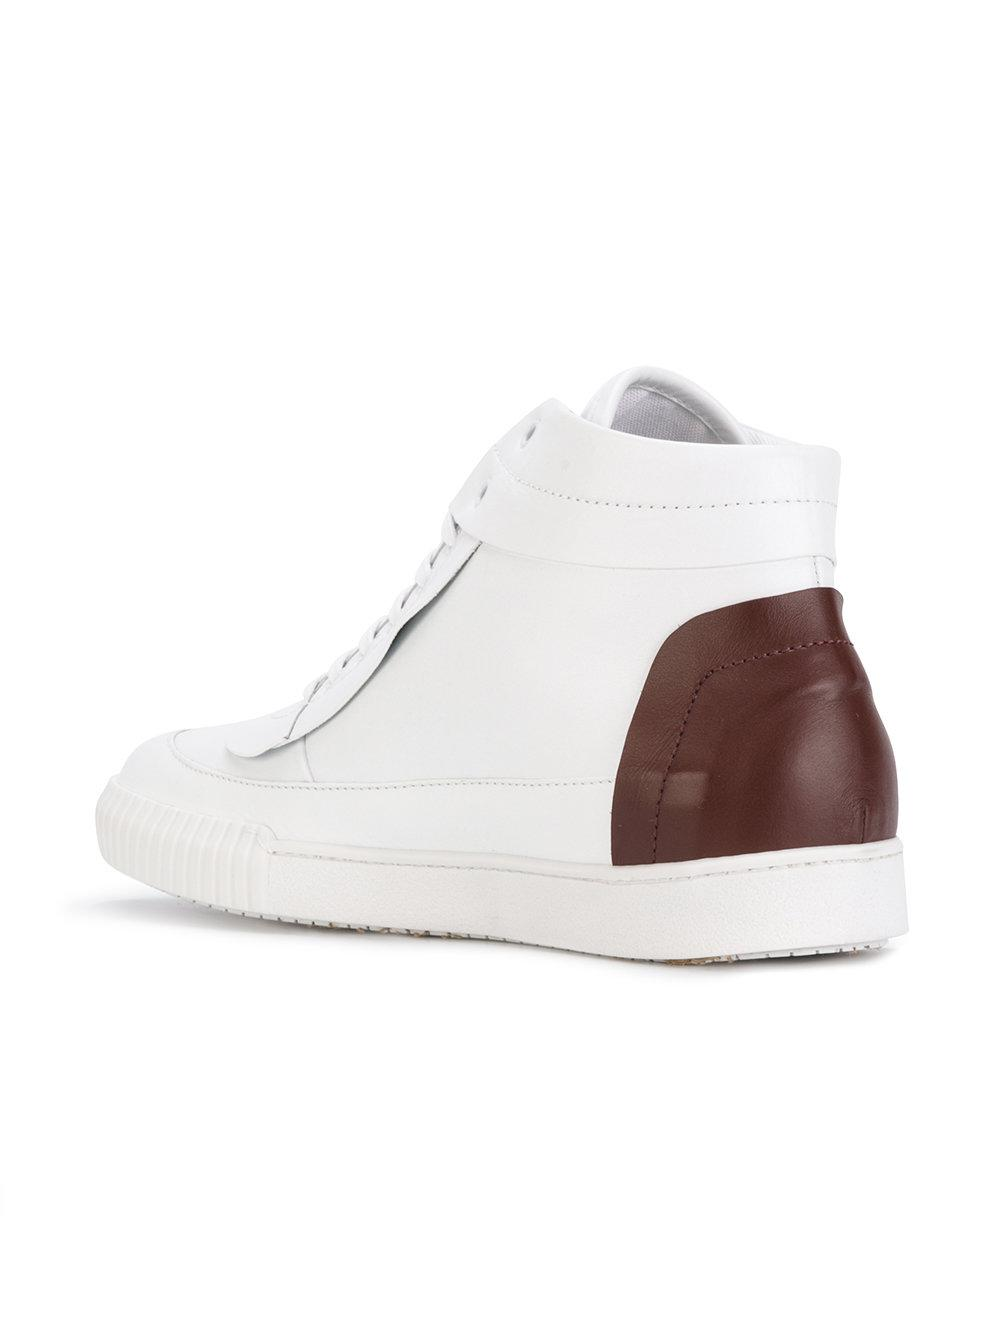 Marni Leather Hi-top Sneakers in White